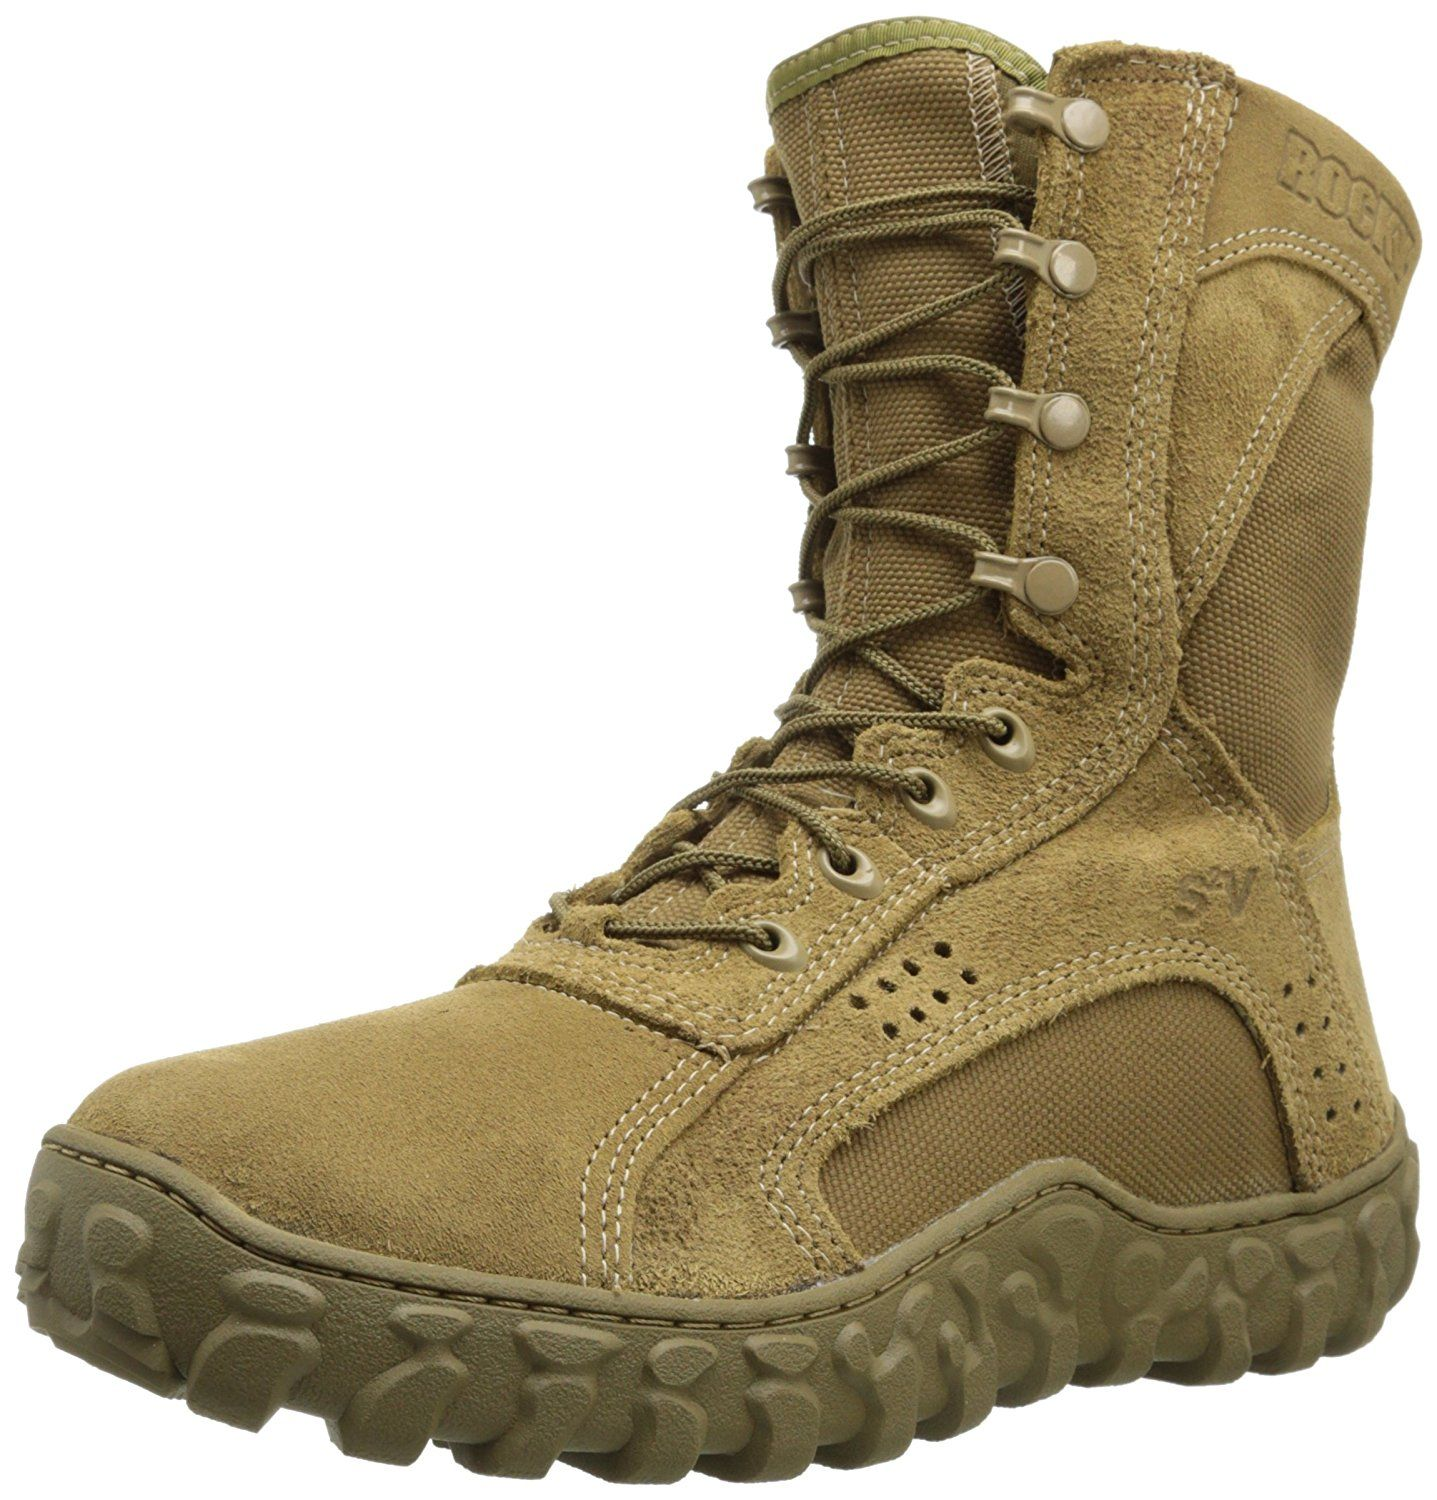 21+ Danner crafter boots review info